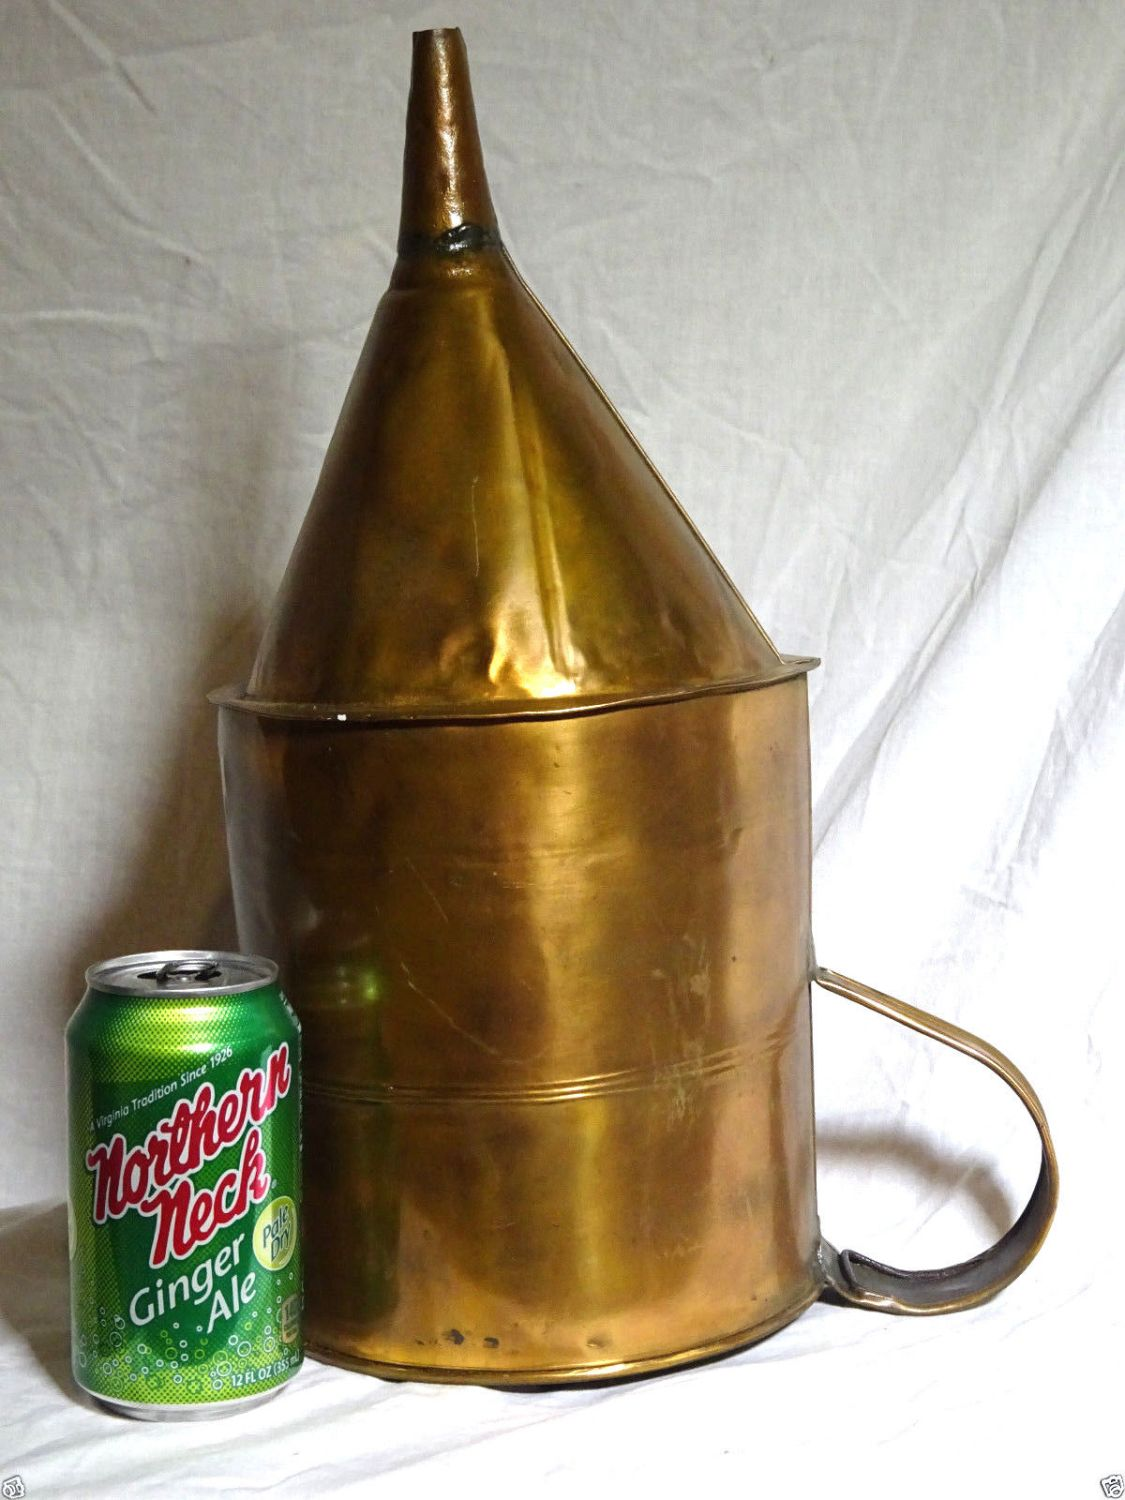 Large Copper Moonshine Still - Year of Clean Water